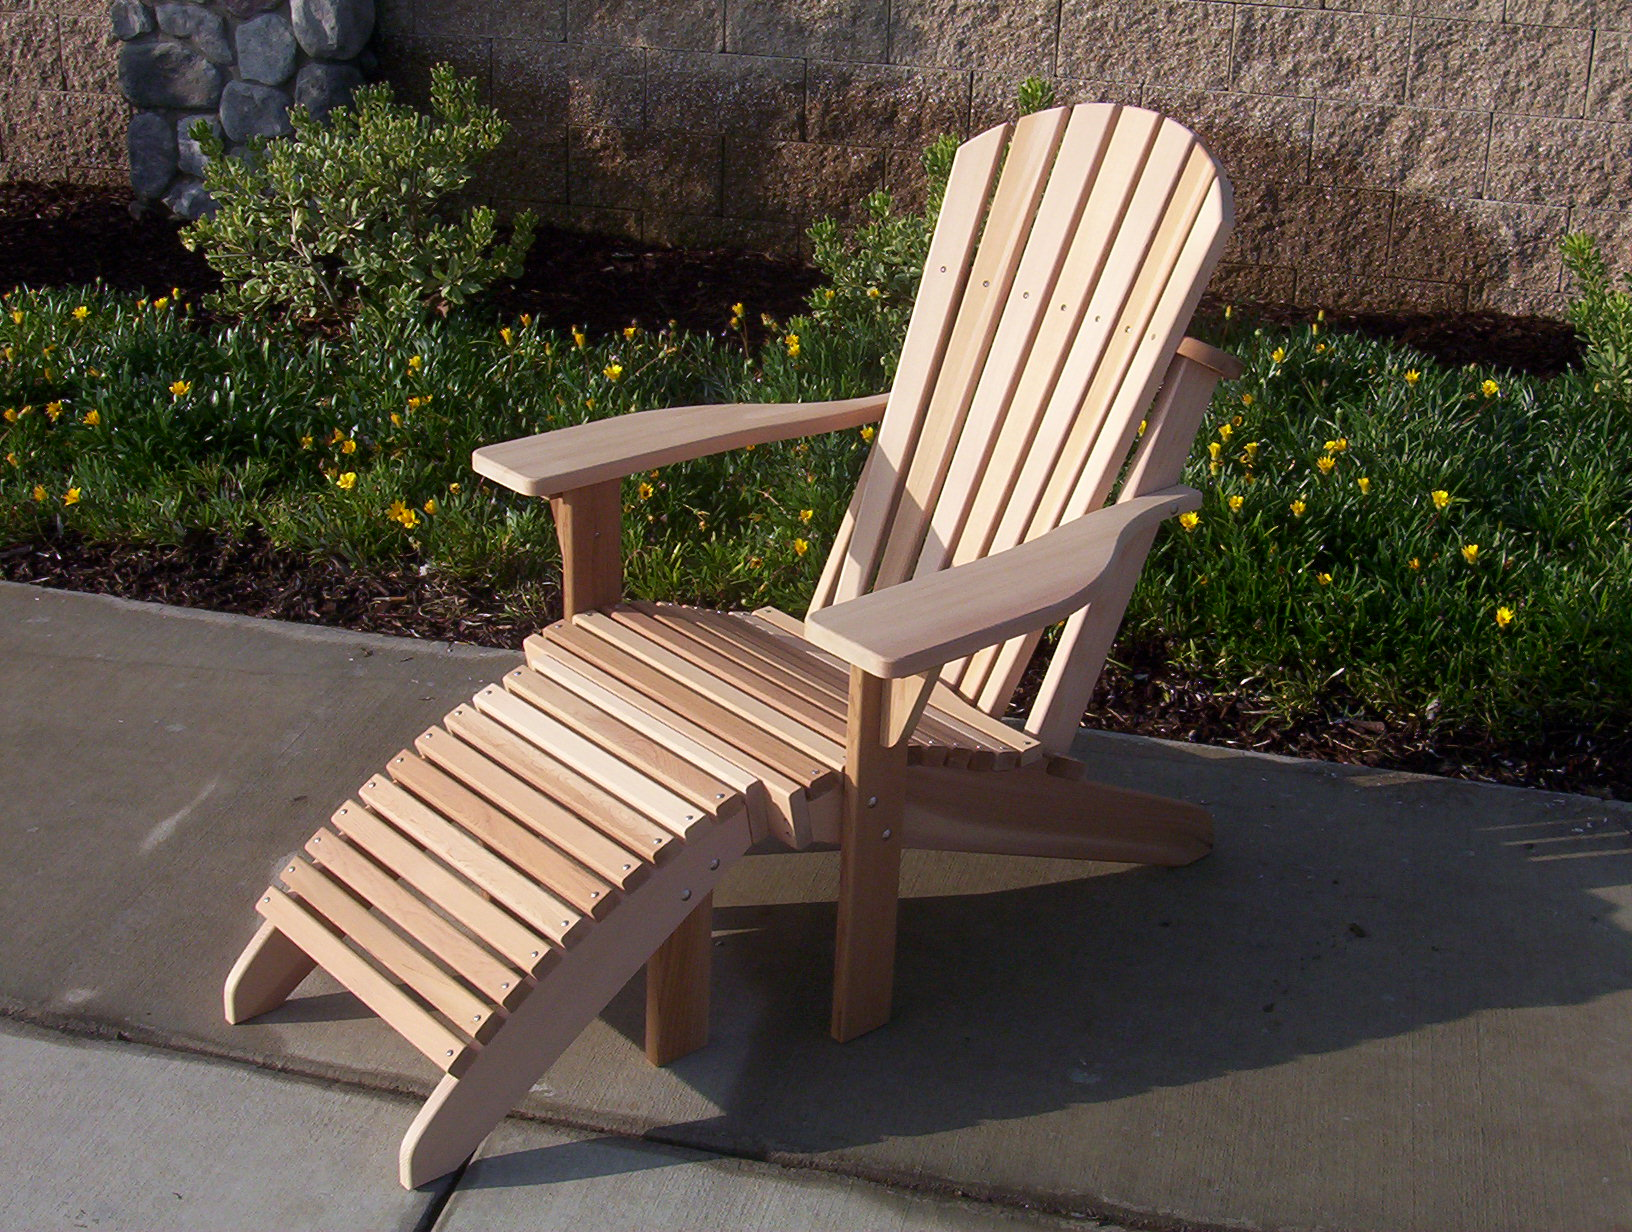 Genial Adirondack Chair With Footrest